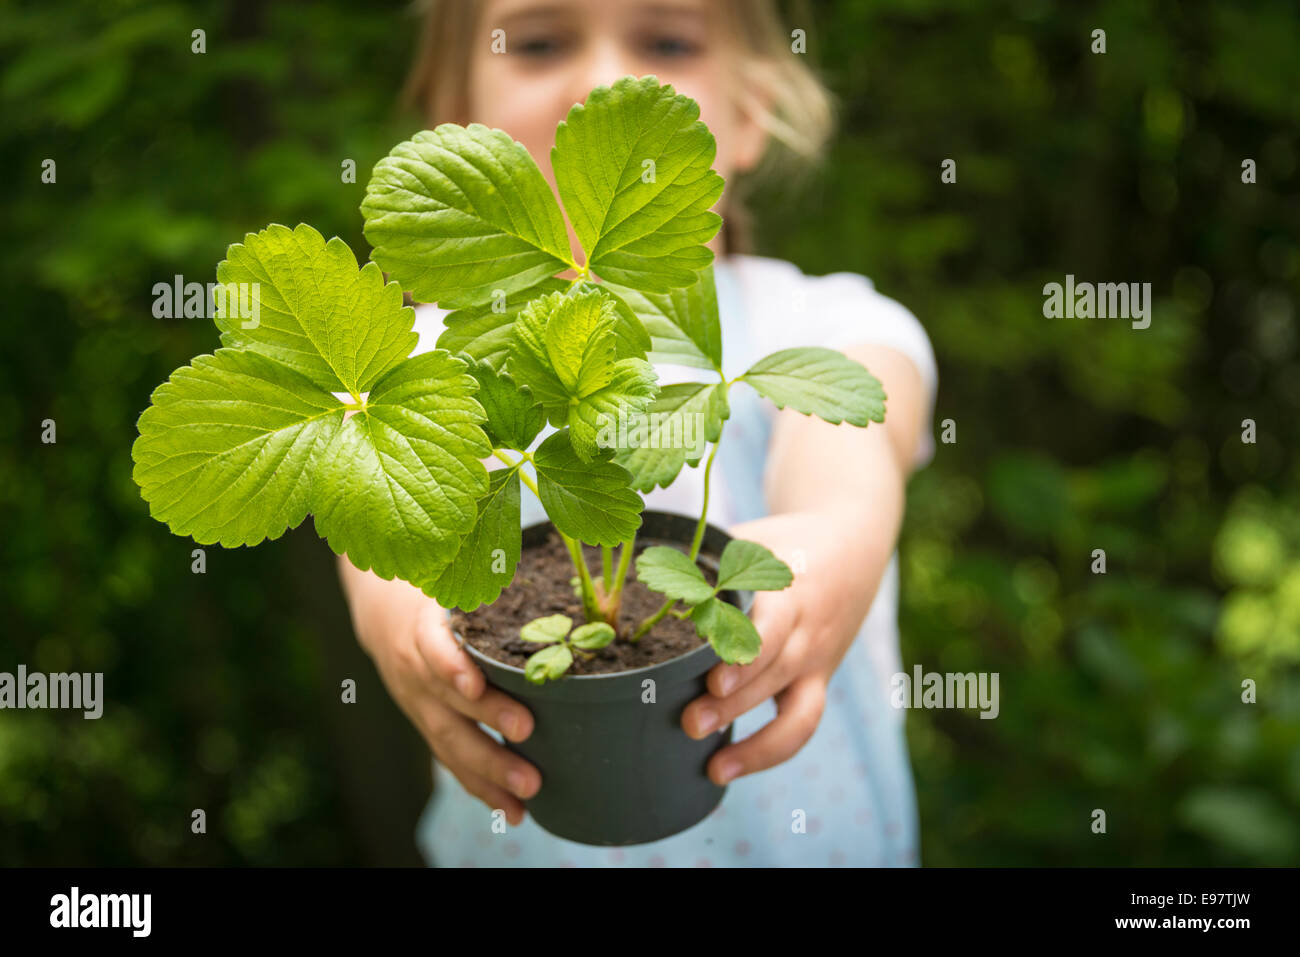 Girl gardening, holding potted plant - Stock Image